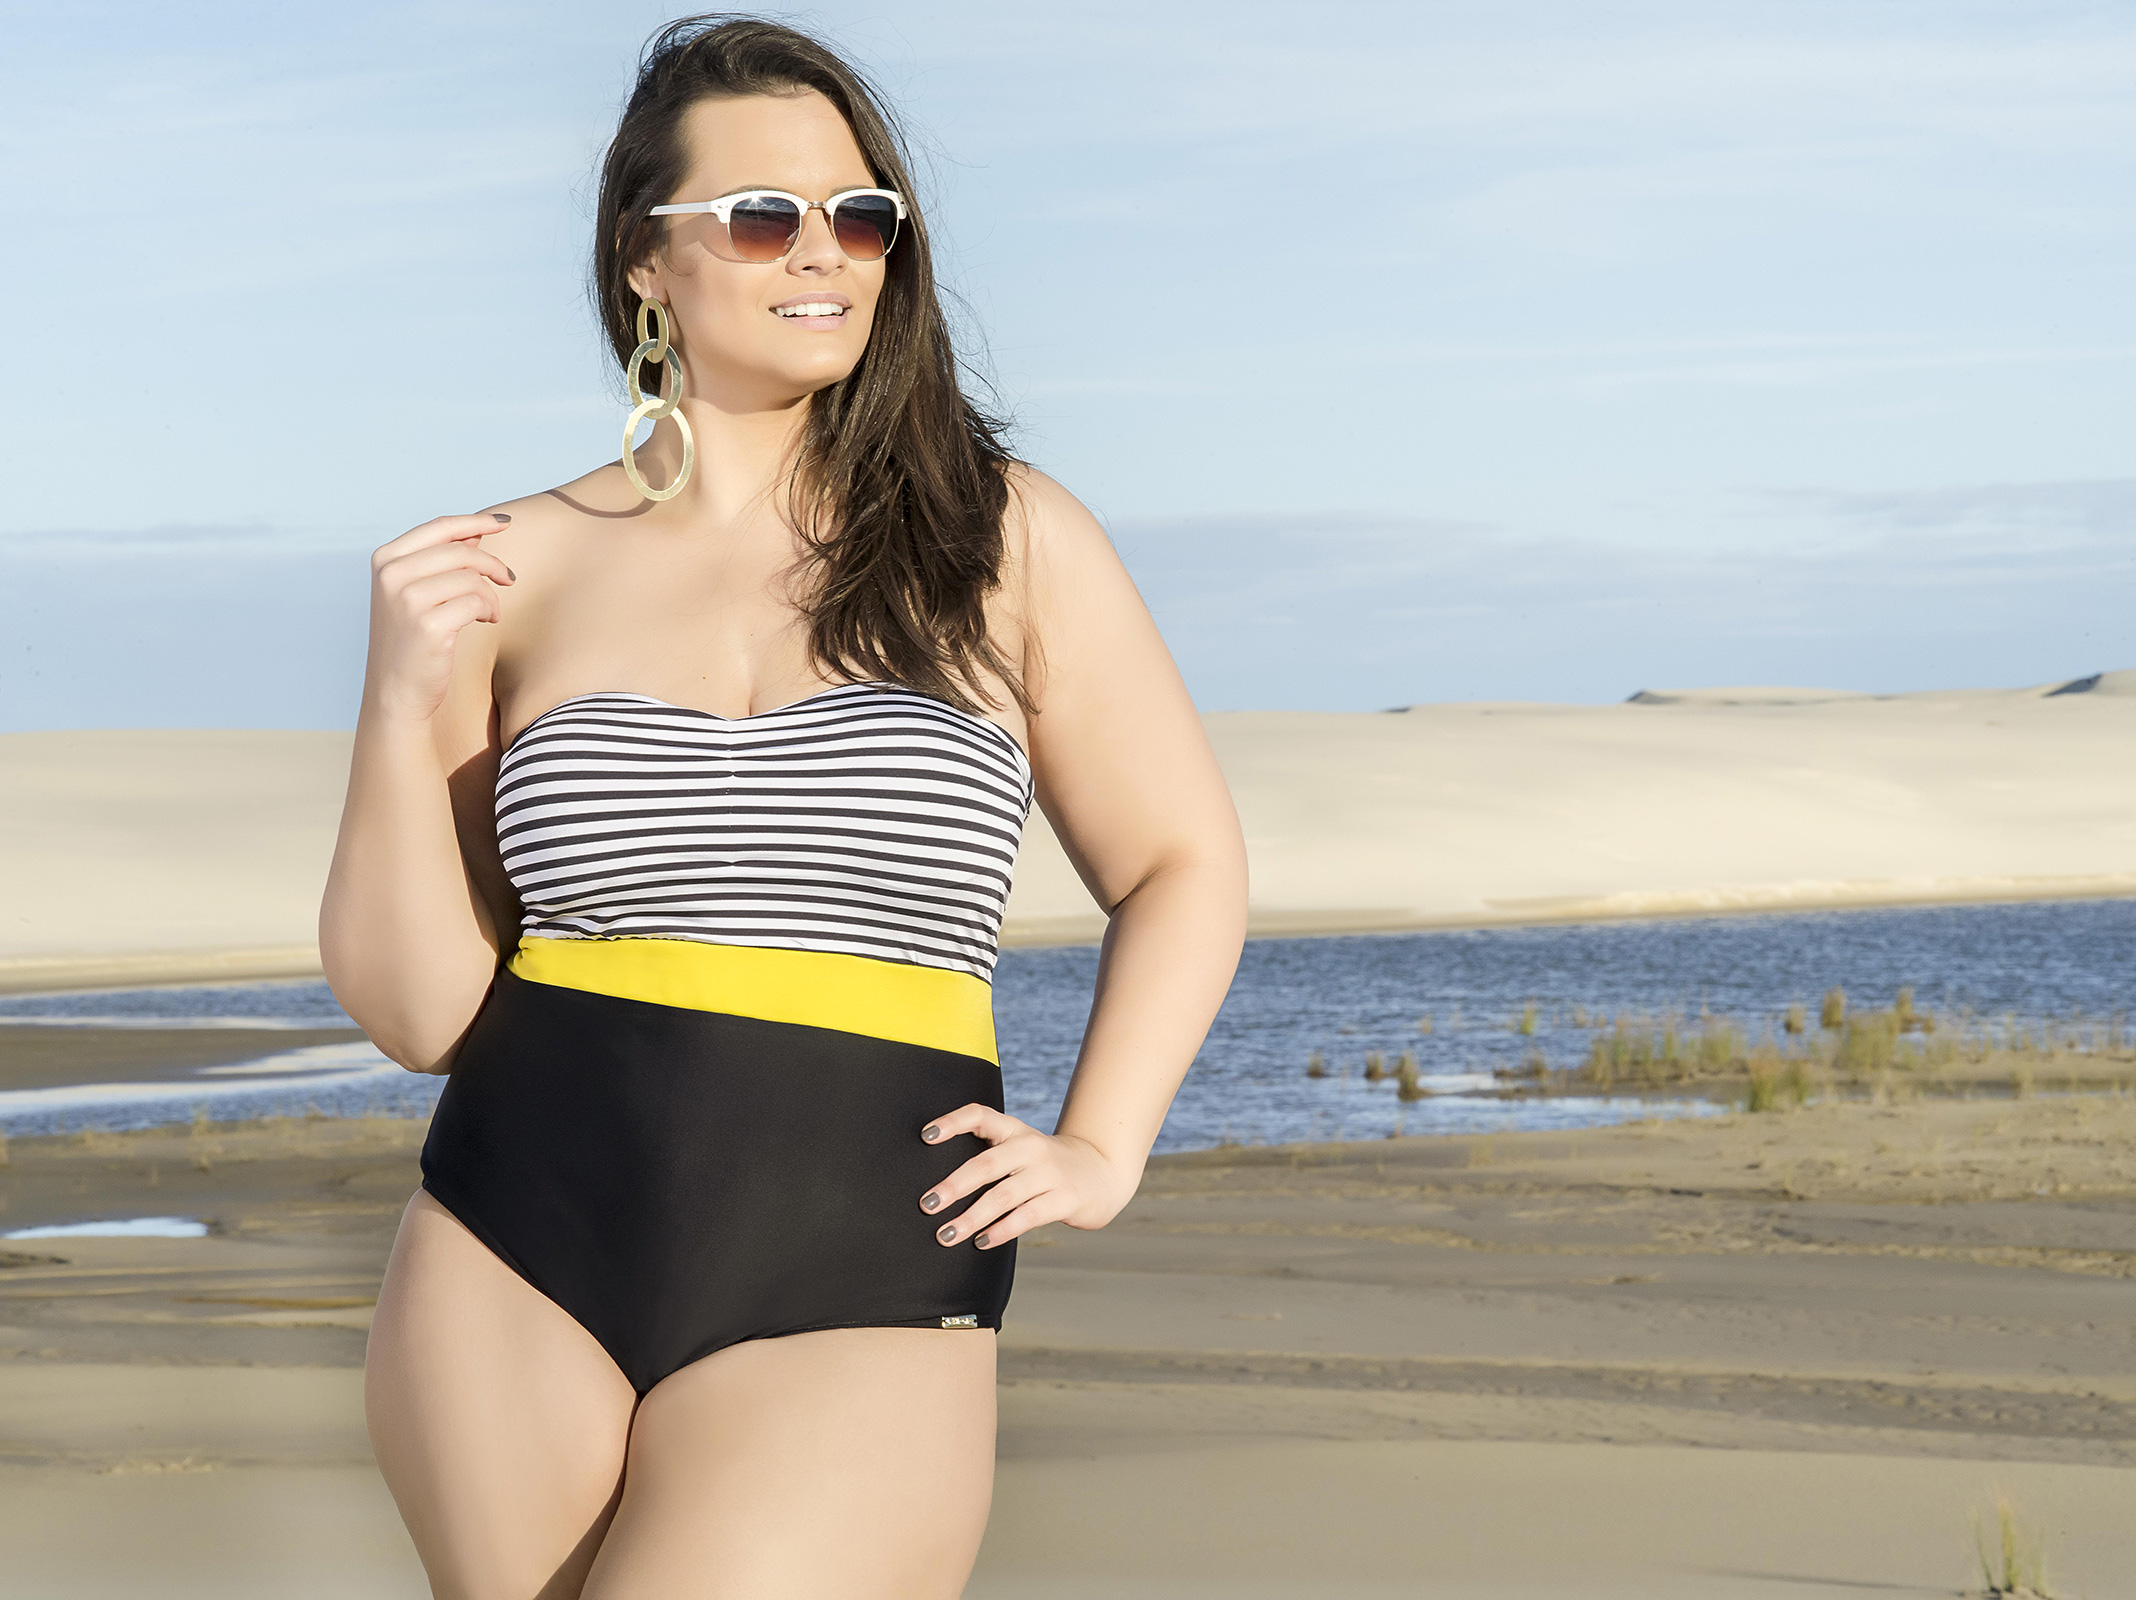 582f387bd4 ... Plus size one-piece swimsuit with striped bandeau style upper - MAIO 3  CORES